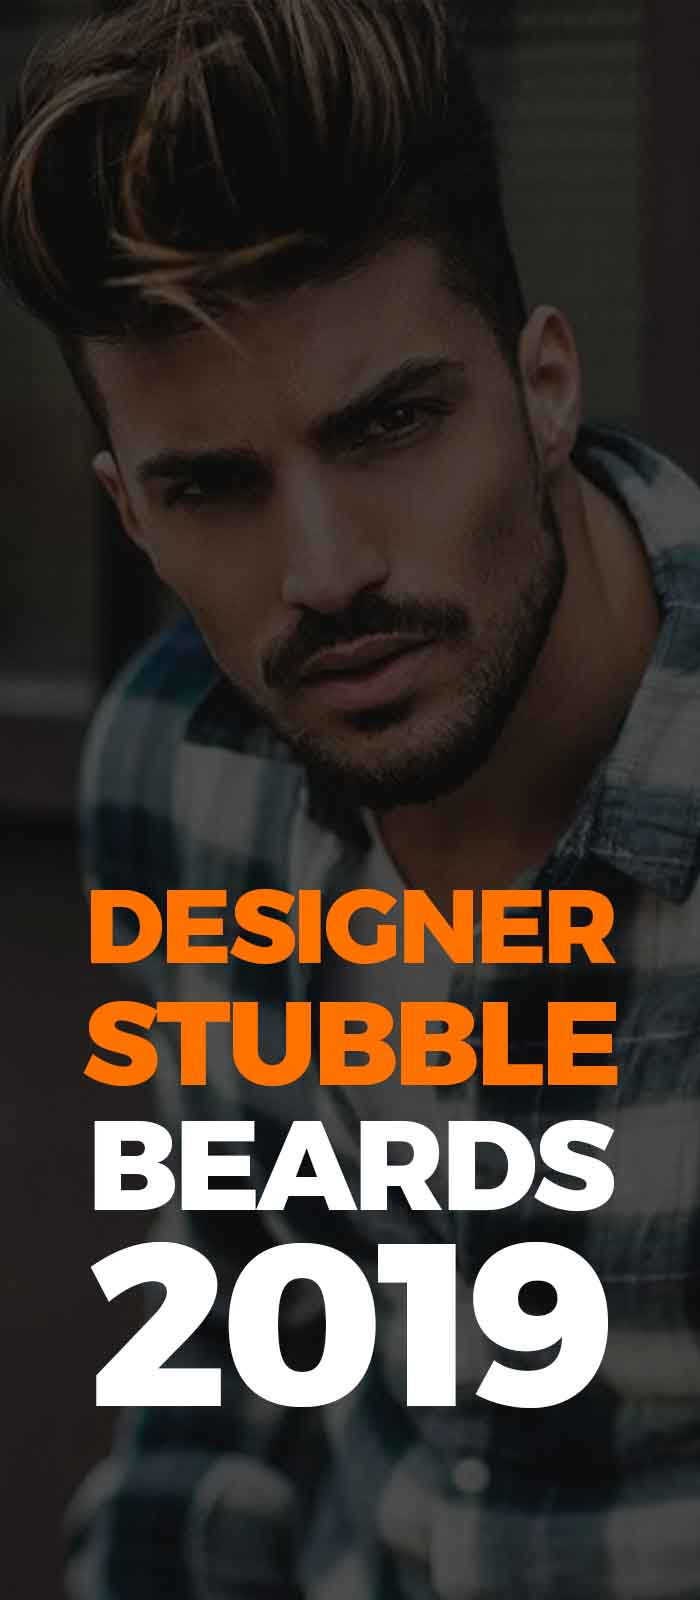 Perfect Designer stubble!